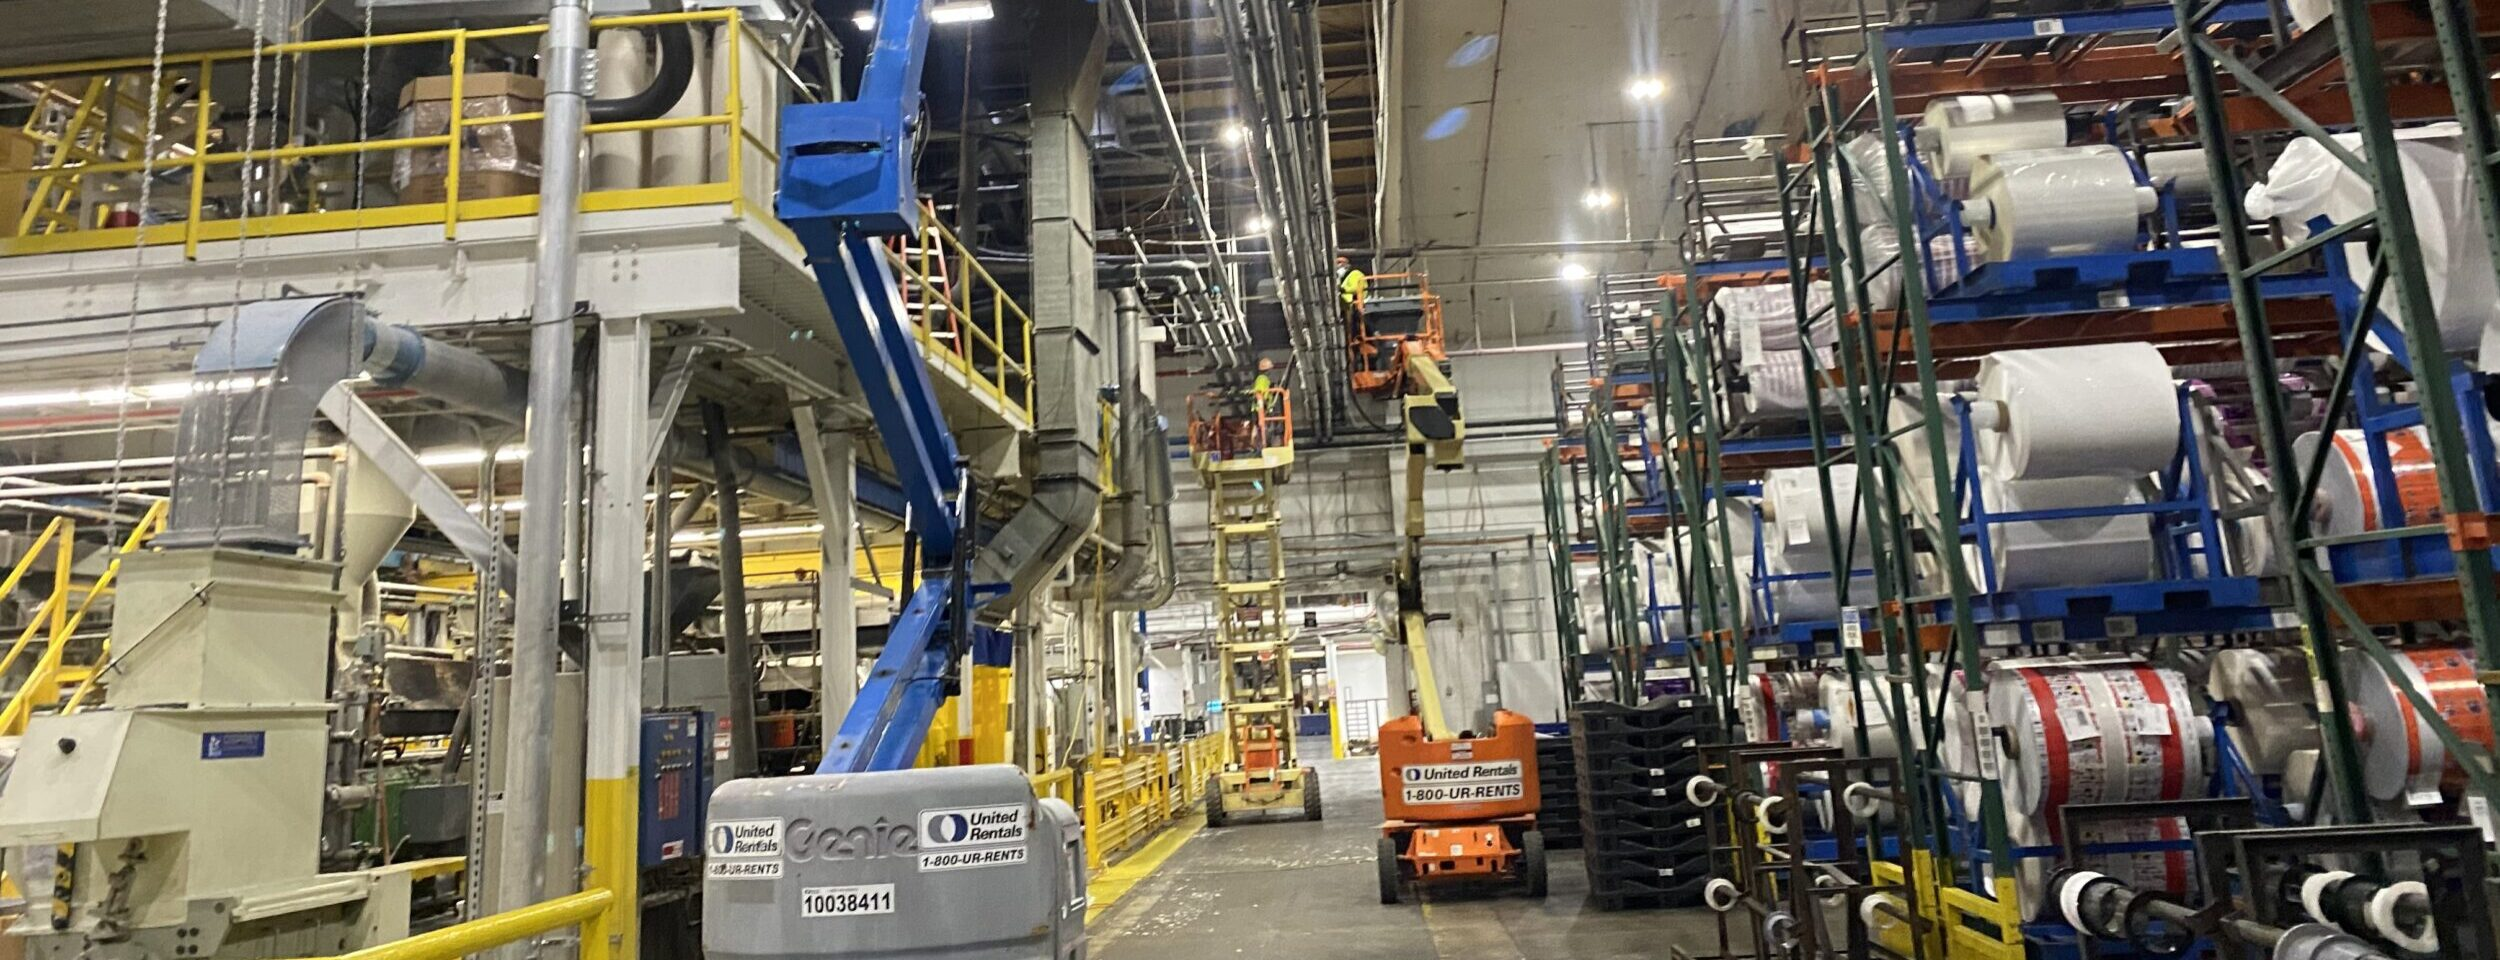 Berry Global Industrial Cleaning